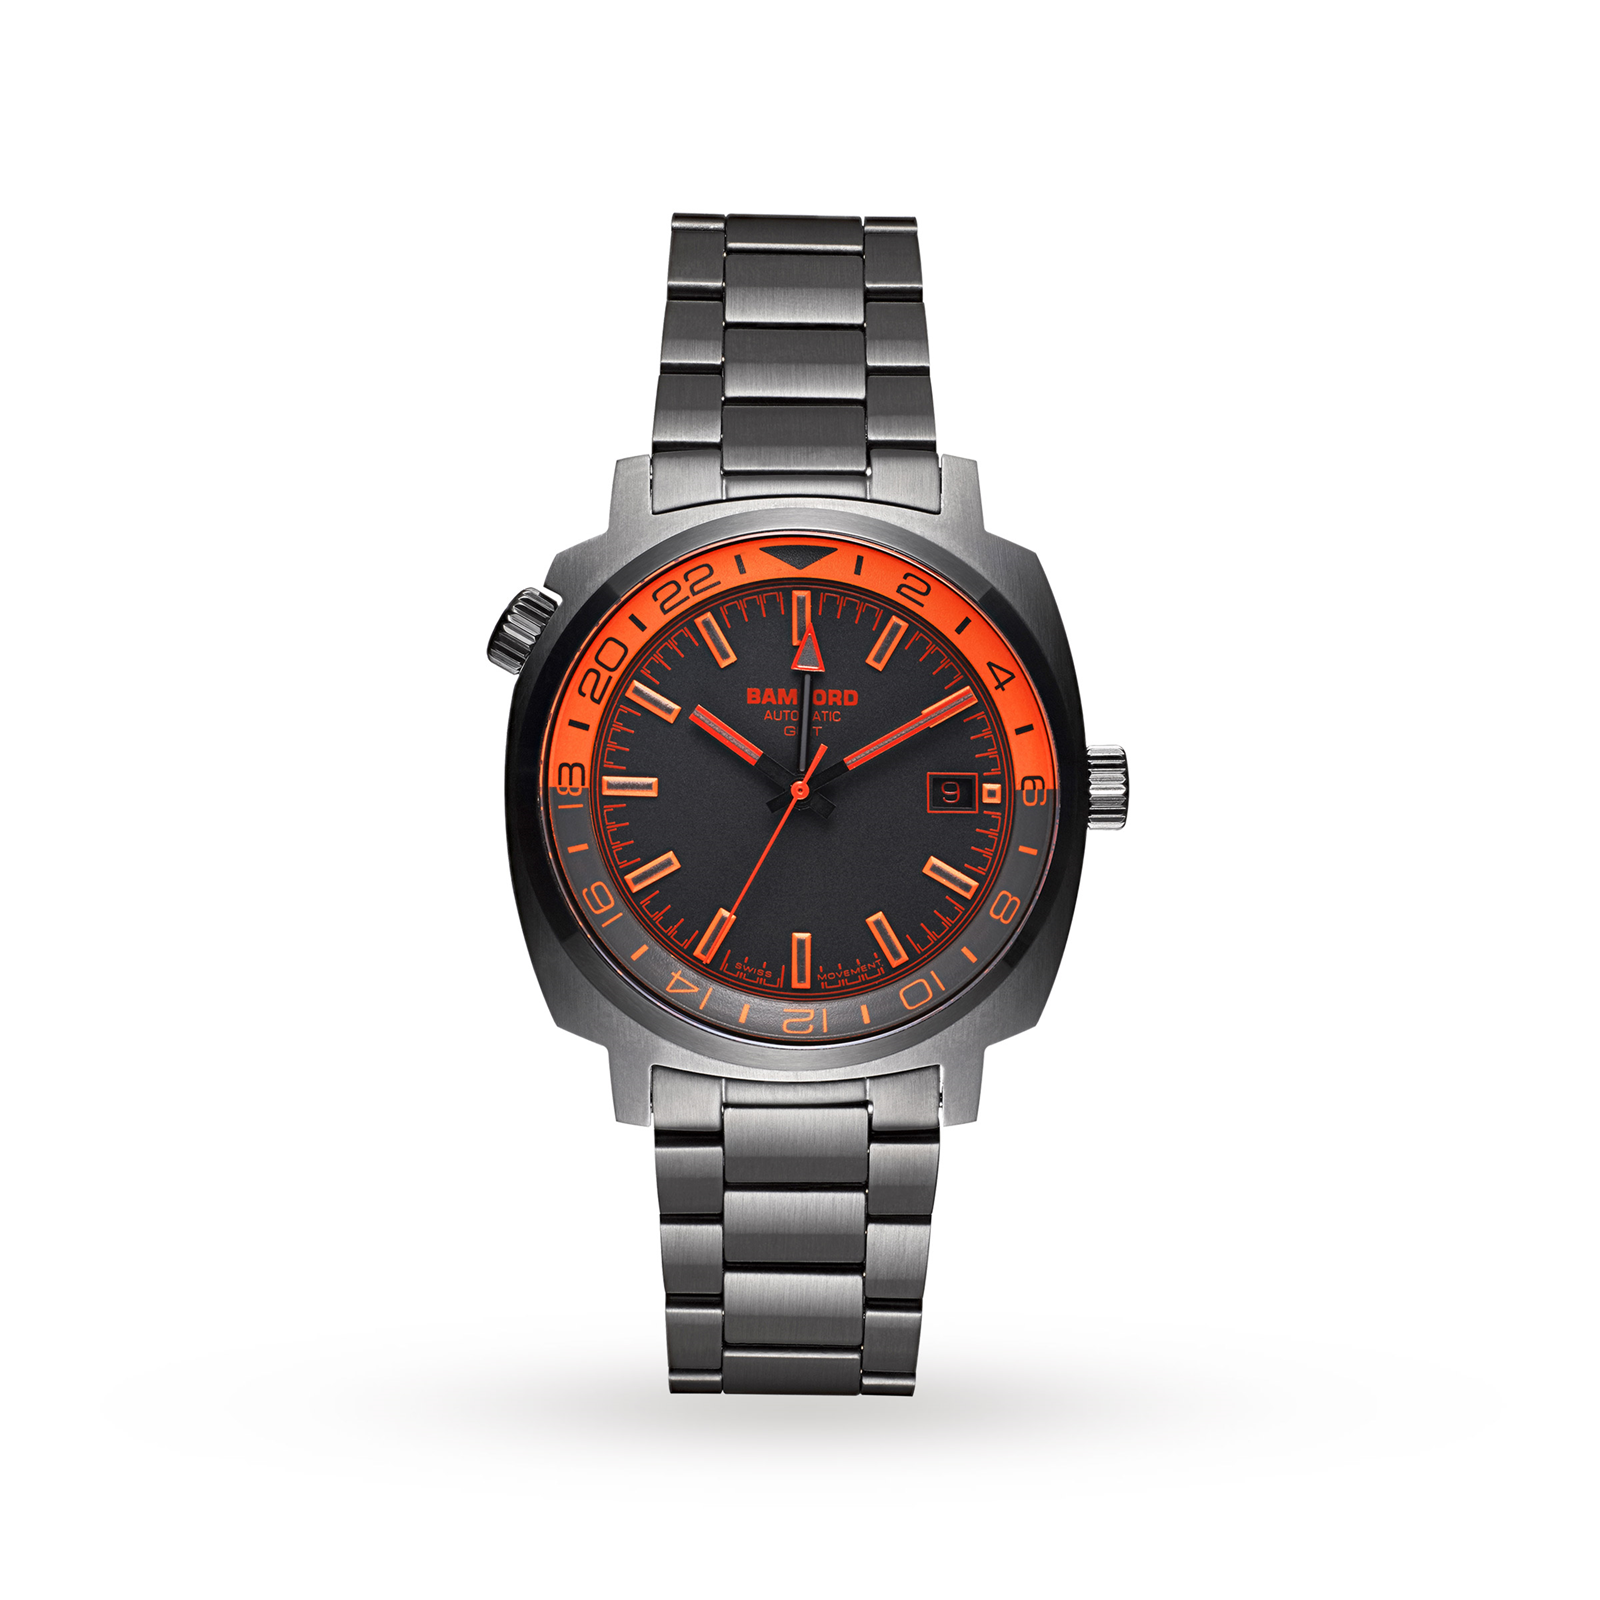 Bamford Gmt Gmt-Gry-Or-Blk